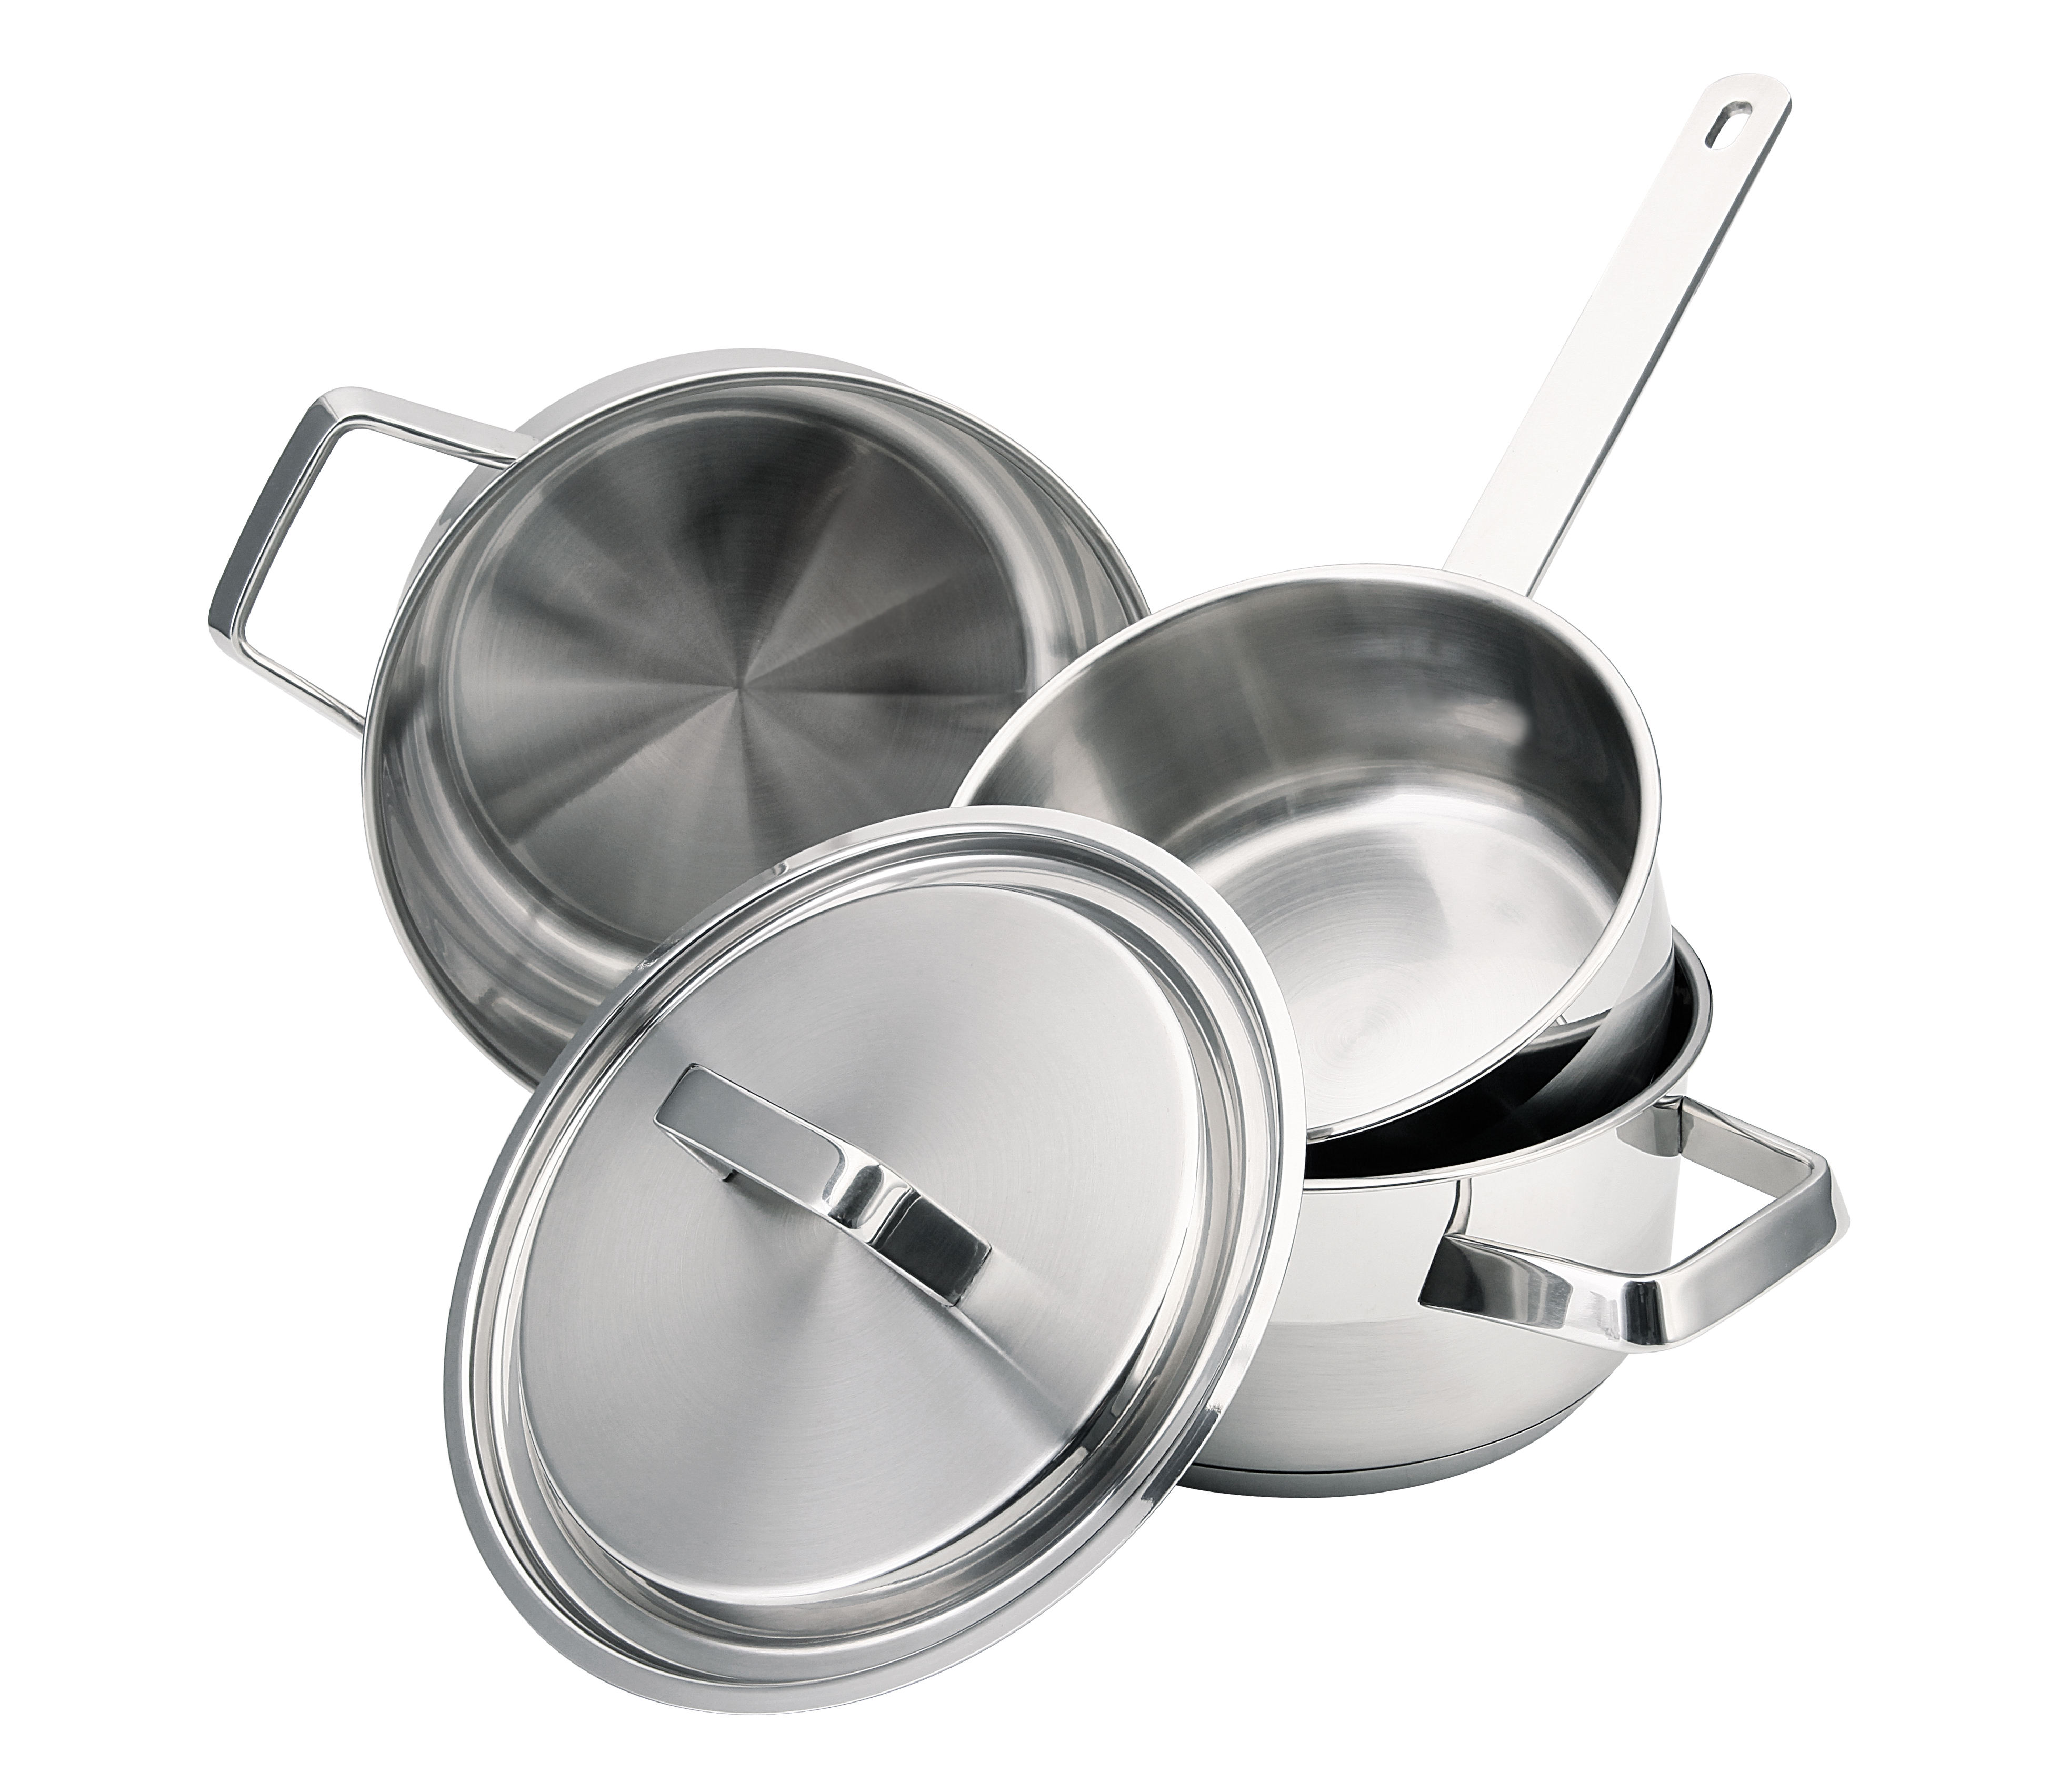 Hot sell stainless steel cookware set cookware soup stock pots for household